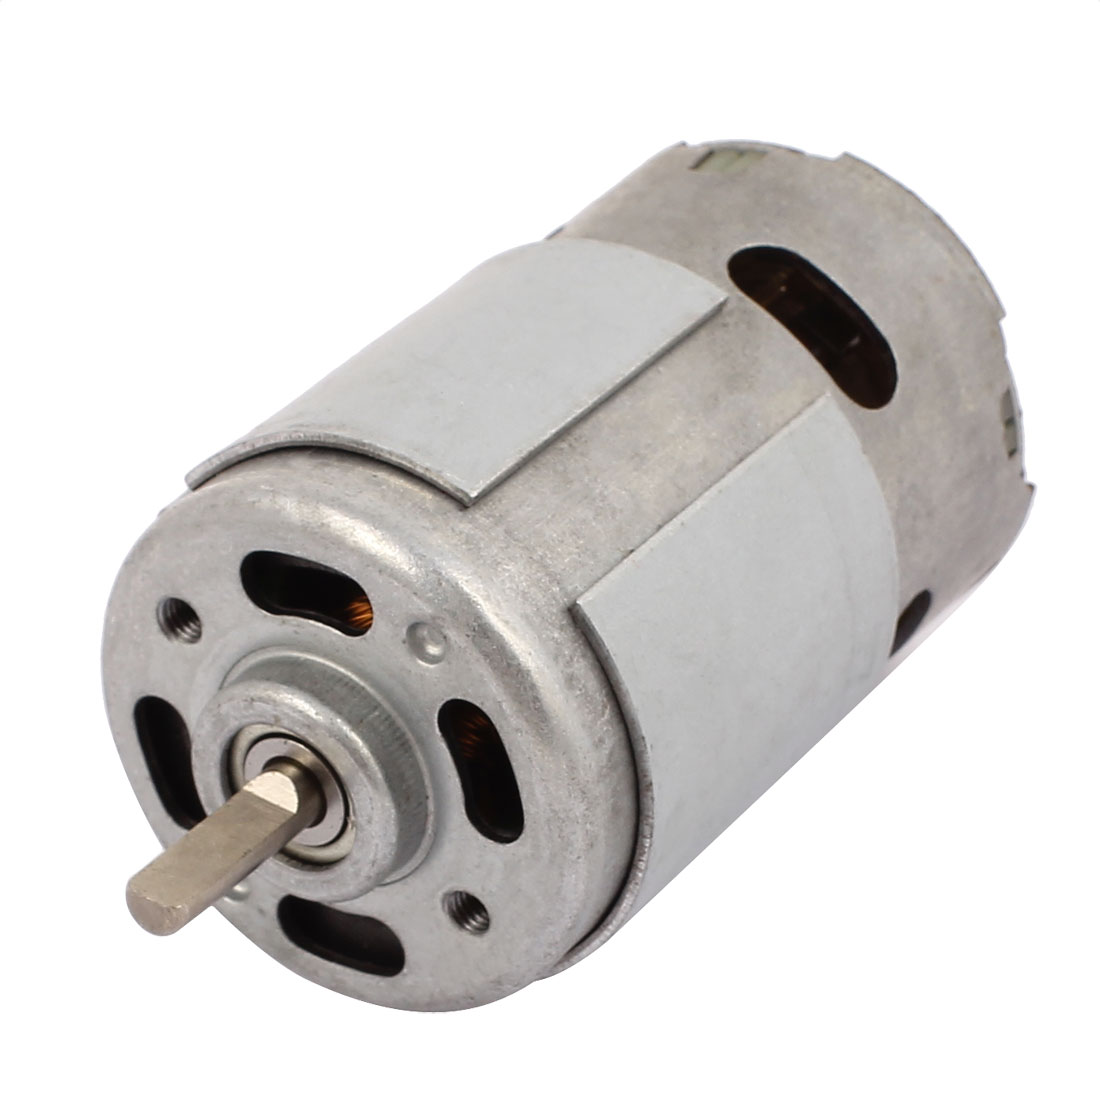 DC 6-24V 27118RPM Large Torque Micro Vibration DC Motor for Electric Massage